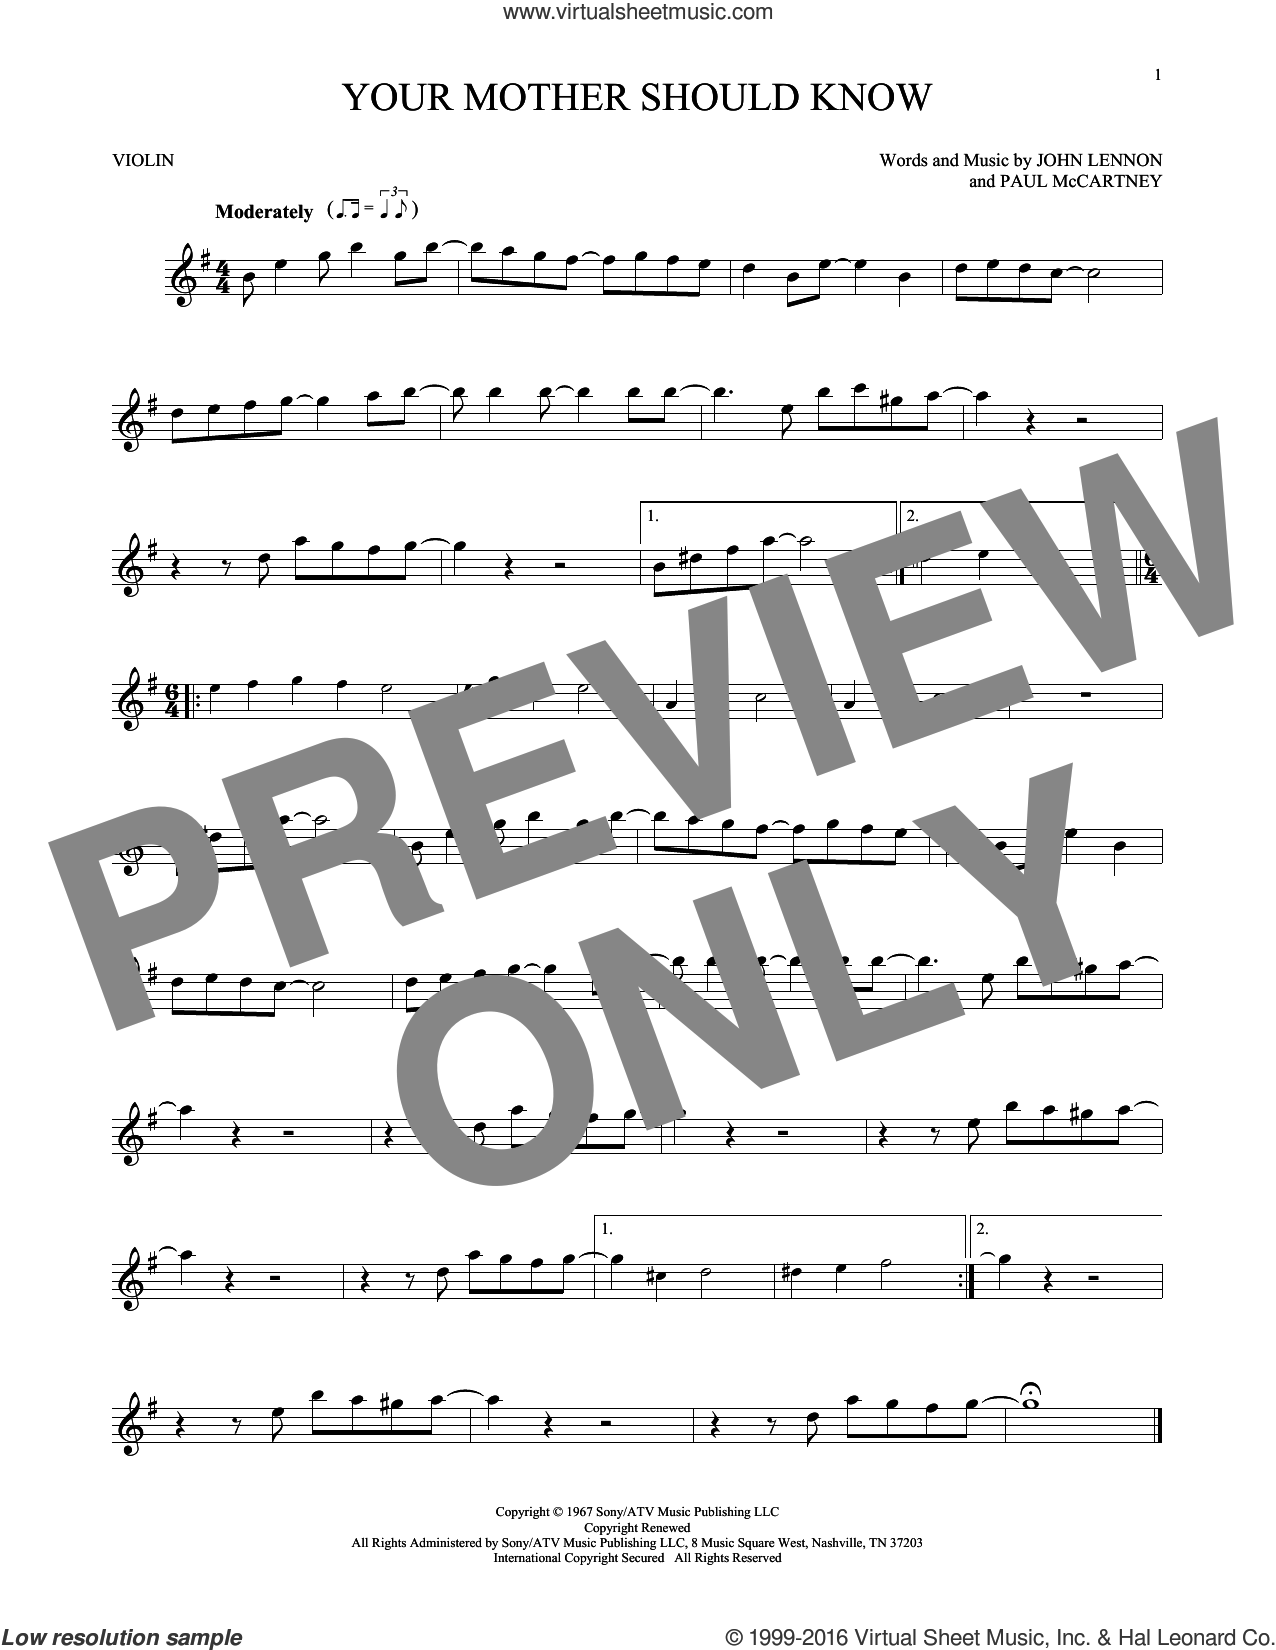 Your Mother Should Know sheet music for violin solo by The Beatles, John Lennon and Paul McCartney, intermediate